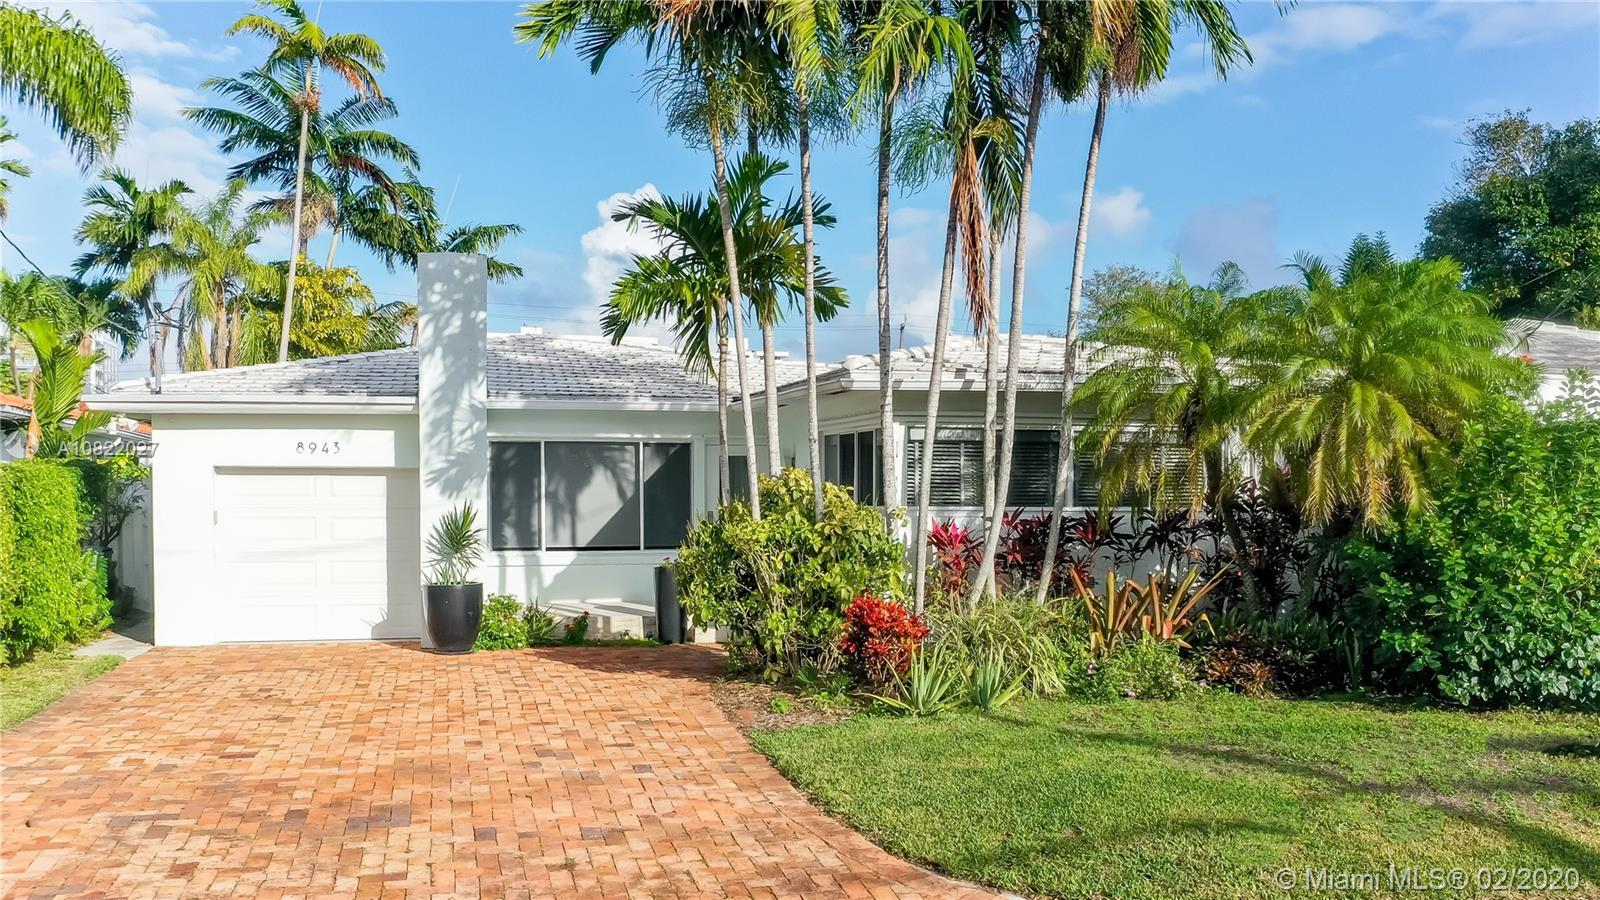 Pristine home conviniently located just a short walk to the beach and Surfside center, North Beach R